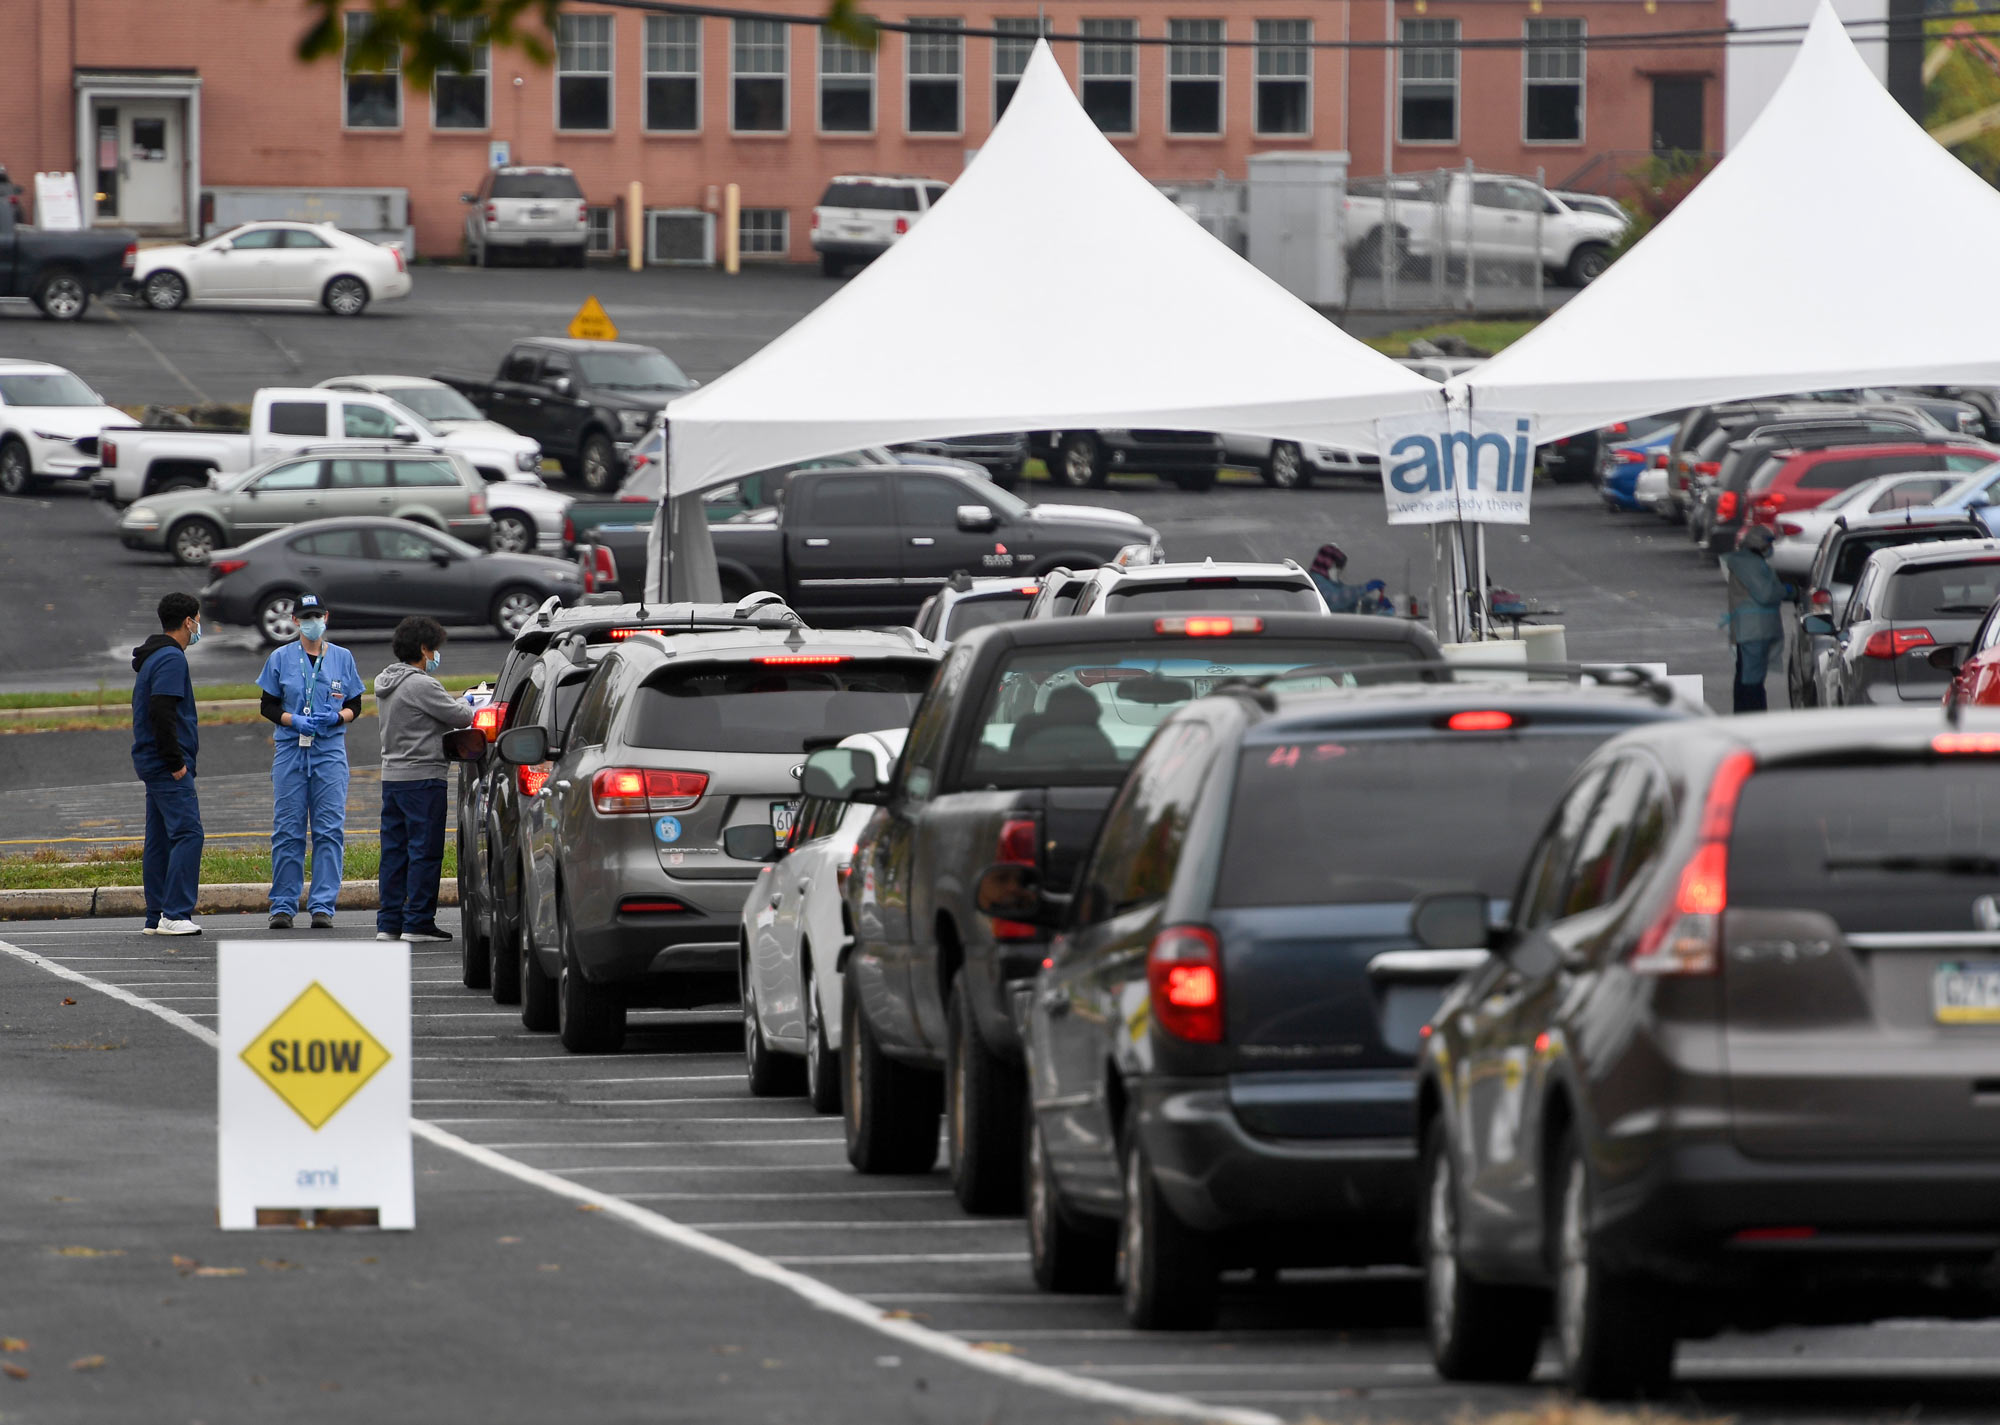 People in cars wait in line for COVID-19 testing in Reading, Pennsylvania, outside FirstEnergy Stadium on October 13.